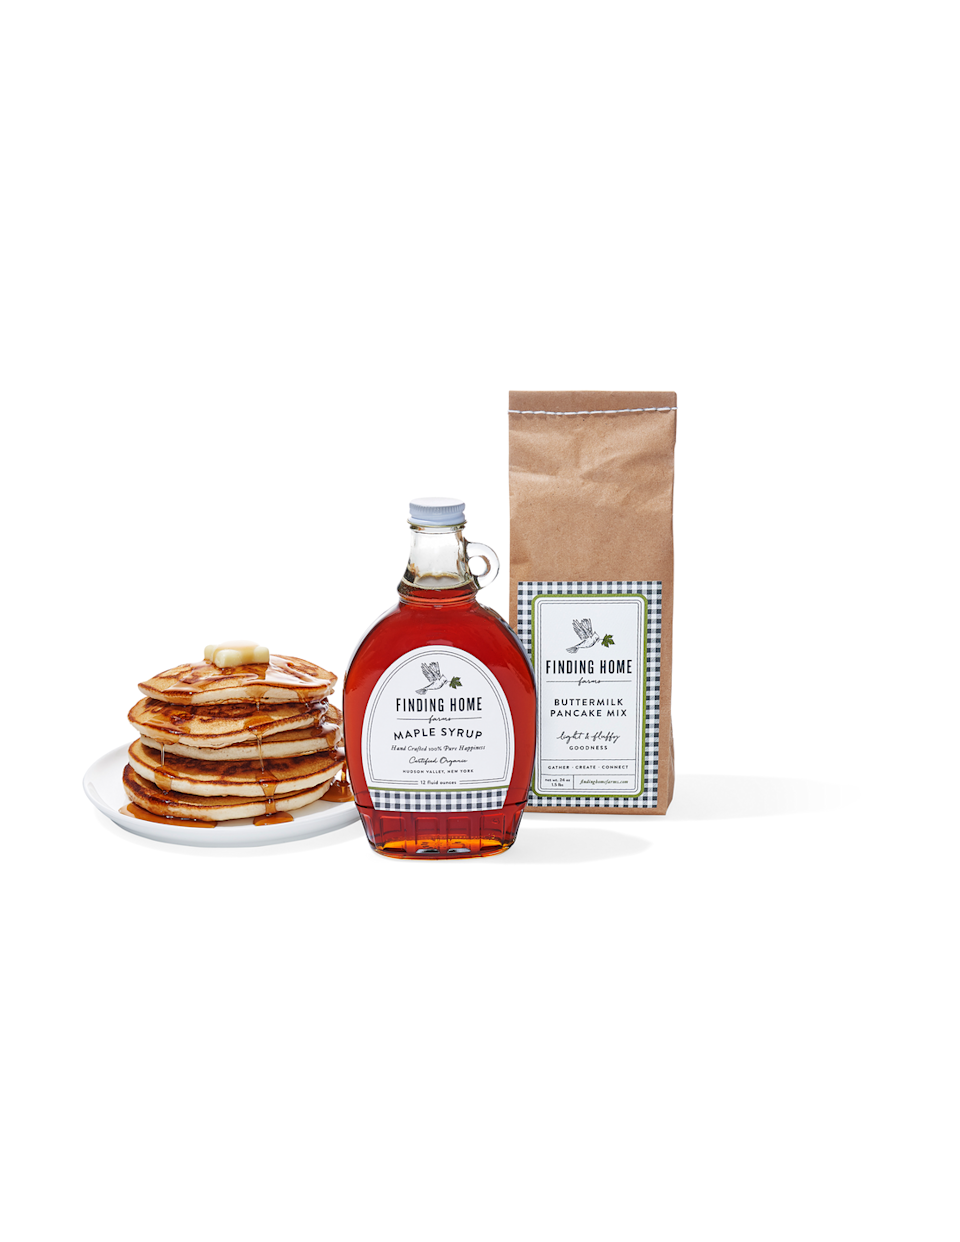 """<p><strong>Finding Home Farms </strong></p><p>$30</p><p><a class=""""link rapid-noclick-resp"""" href=""""https://findinghomefarms.com/product/boxed-organic-maple-syrup-pancake-mix-gift-set/"""" rel=""""nofollow noopener"""" target=""""_blank"""" data-ylk=""""slk:SHOP NOW"""">SHOP NOW</a></p><p><em>Originally $30, now 20 percent off with code OPRAH</em></p><p>This syrup from fourth- generation maple farmers in New York's Hudson Valley has a slightly buttery flavor that's unique to the region. Talk about the breakfast of champions.</p>"""